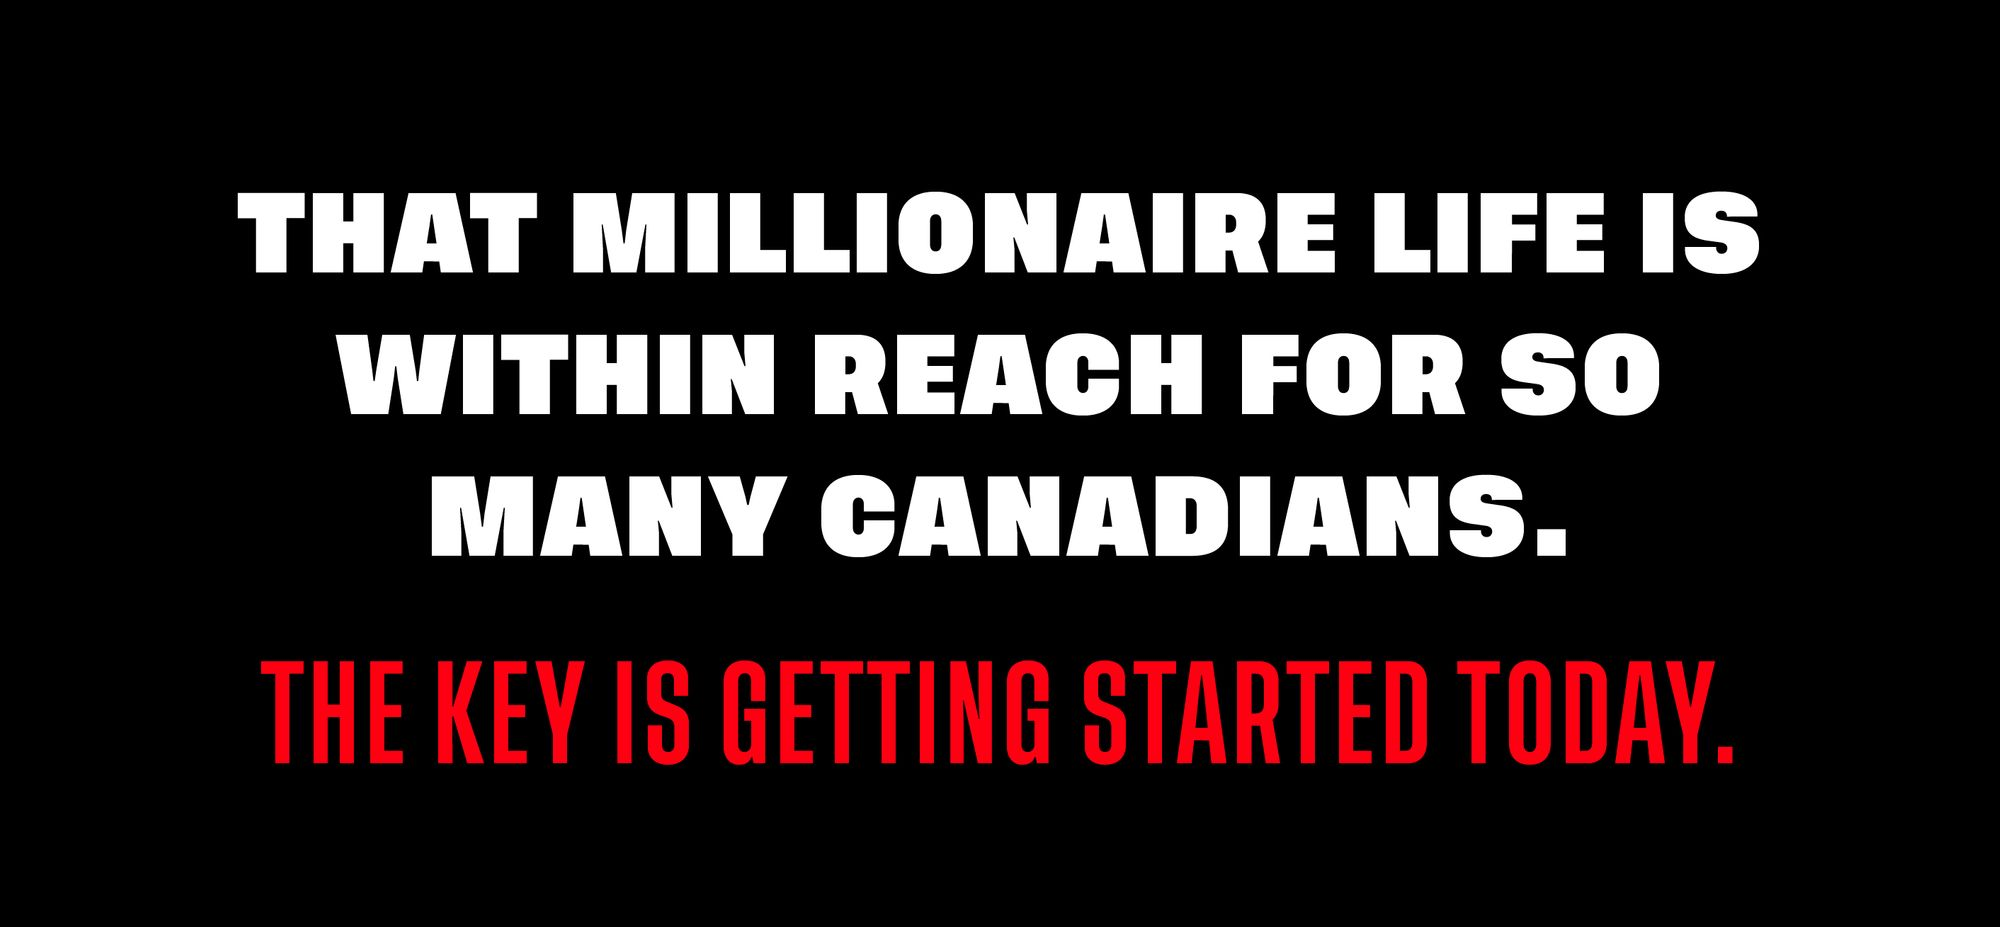 Graphic with text: That millionaire life is within reach for so many Canadians. The key is getting started today!